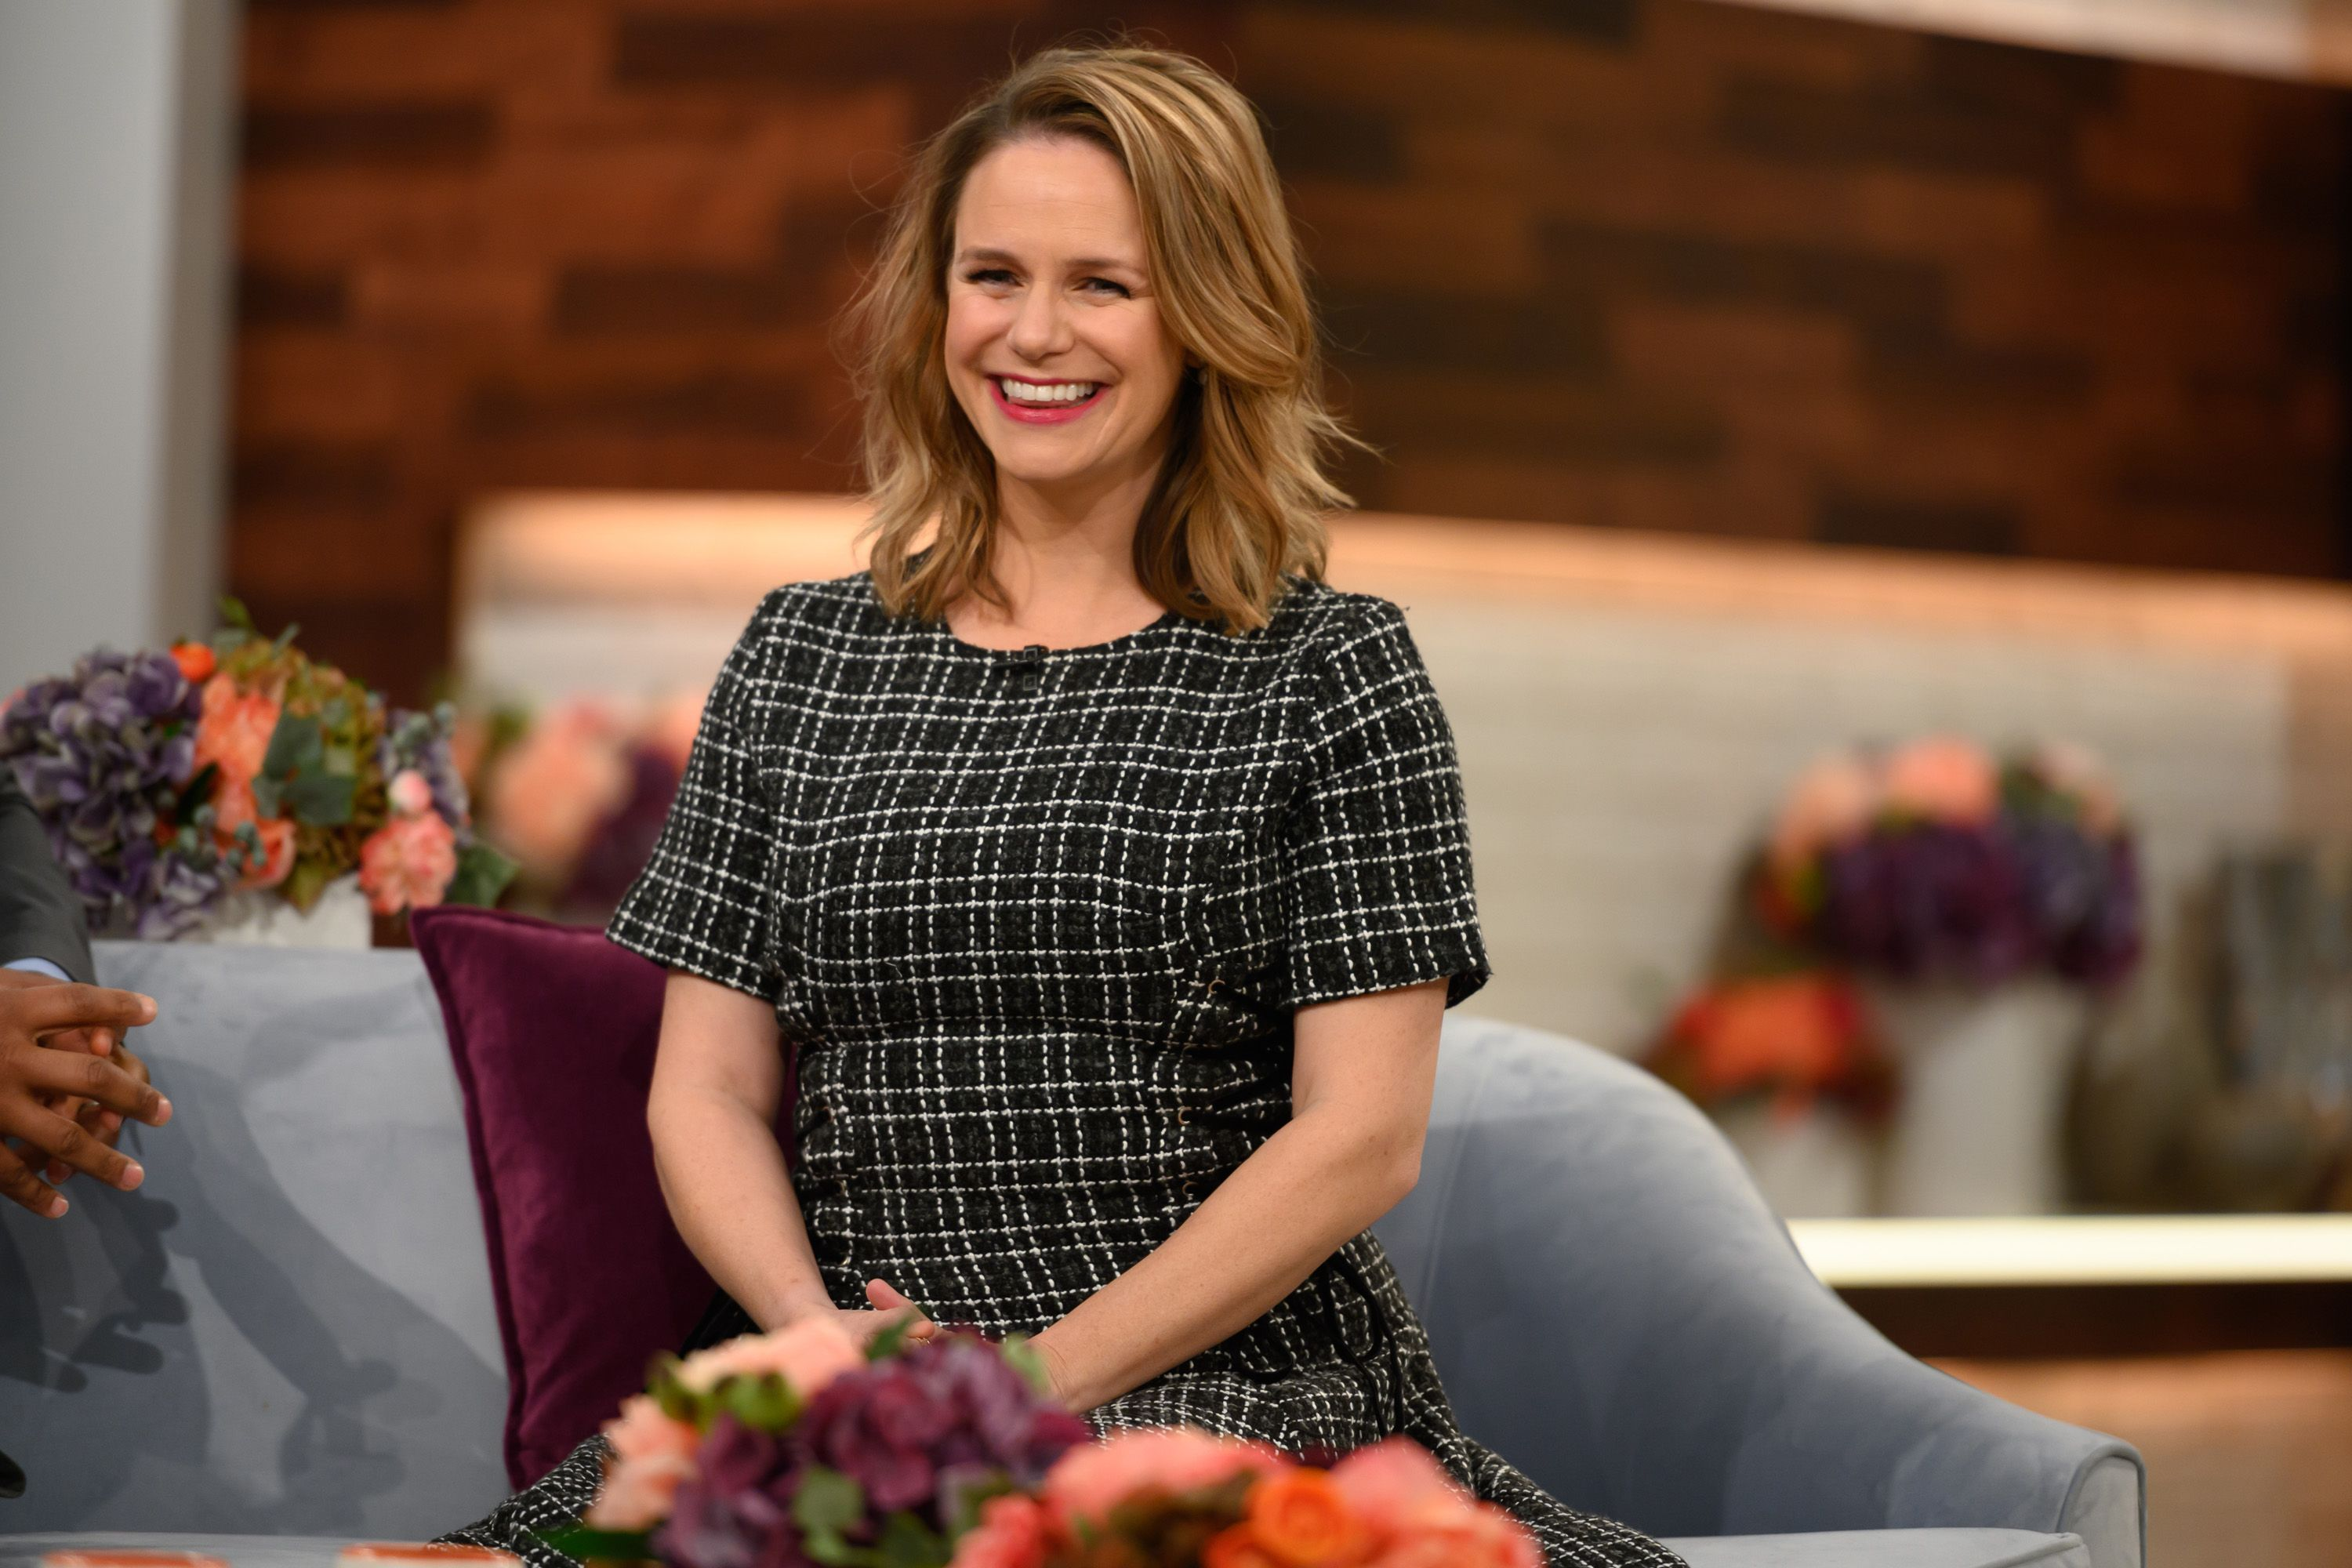 Andrea Barber Gets Real About Lori Loughlin, 'Full House' Secrets, and More in New Book